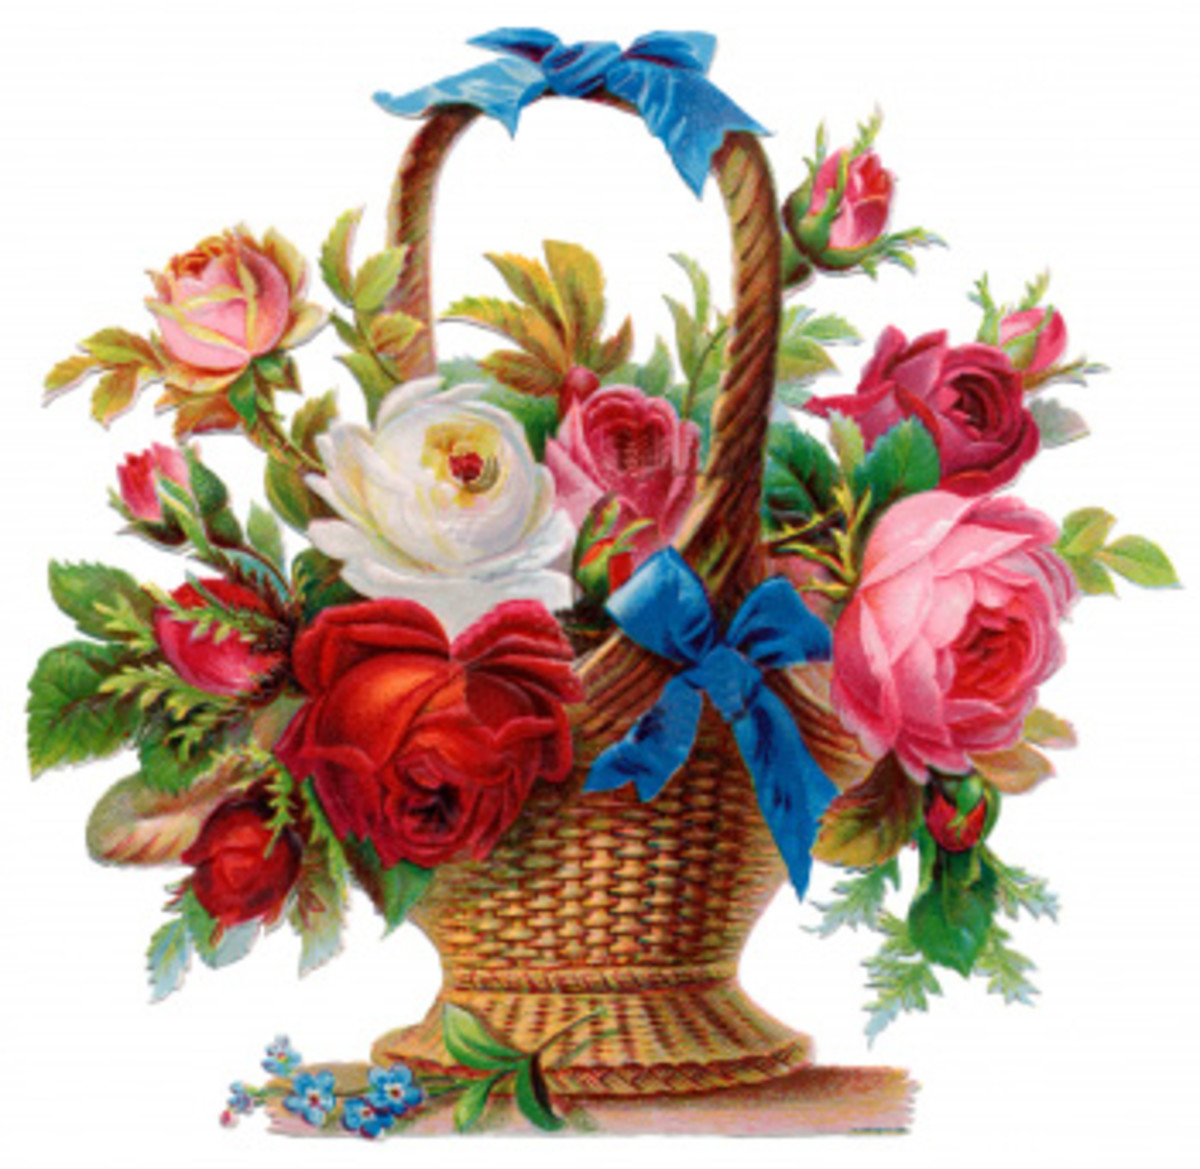 A Victorian-style basket of roses, symbolising love in all its forms.